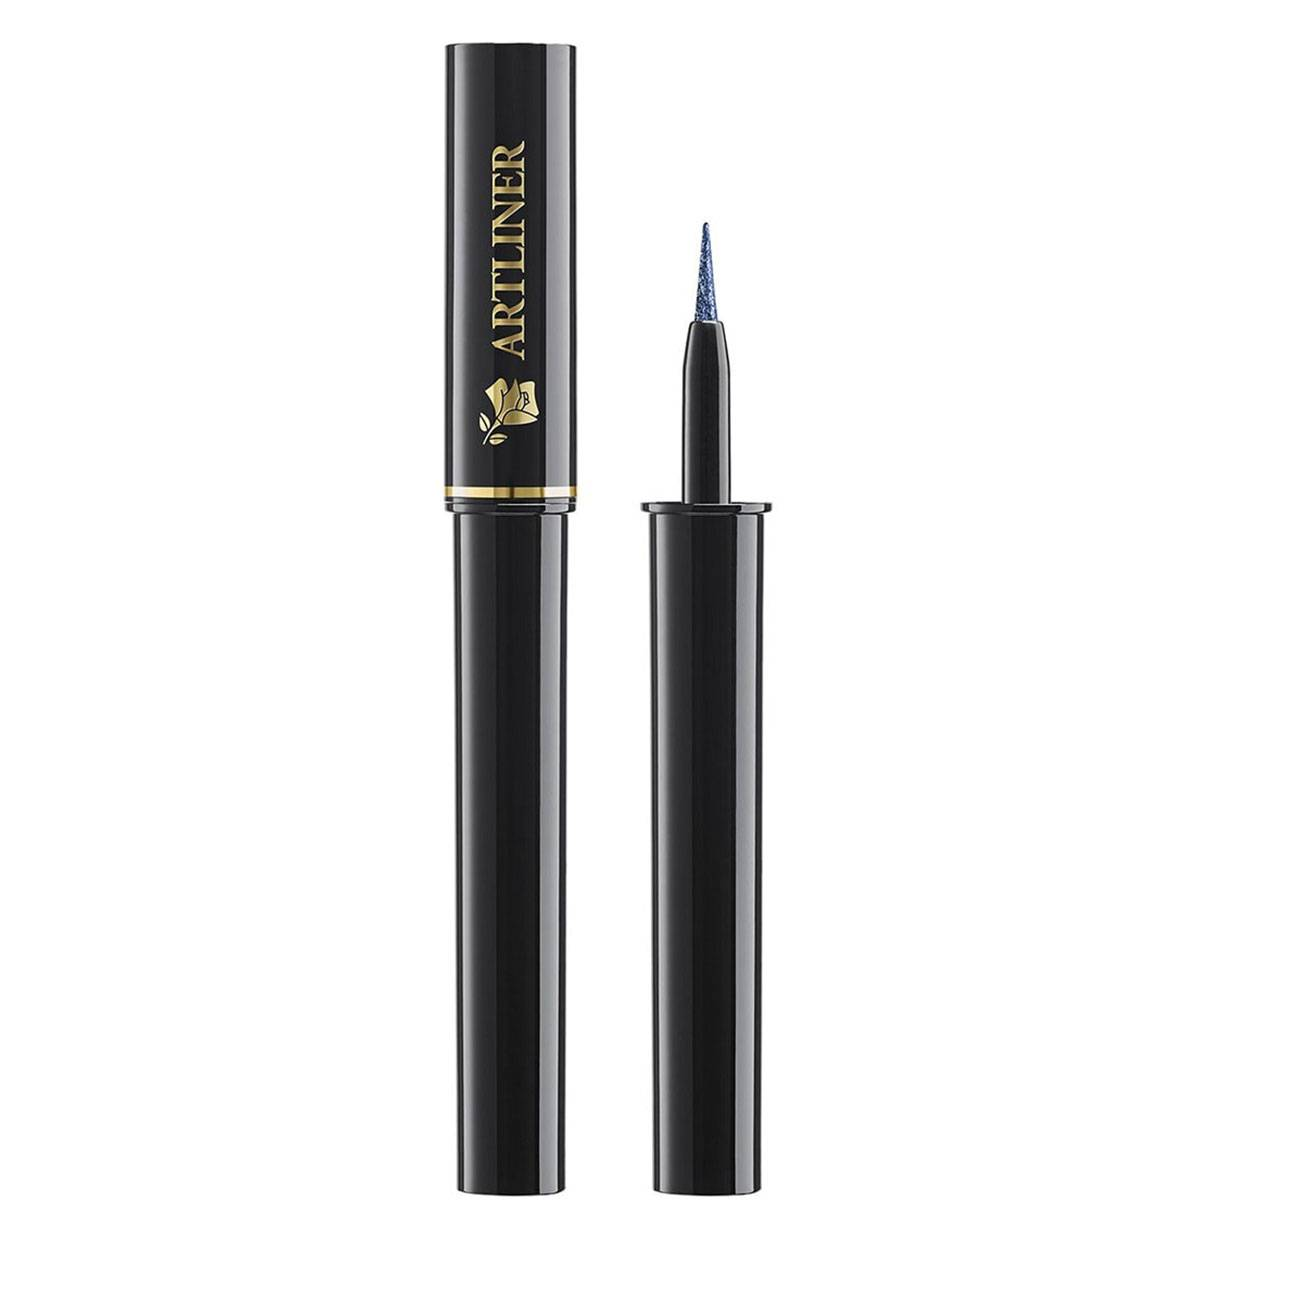 ARTLINER 09 1.4ml imagine produs